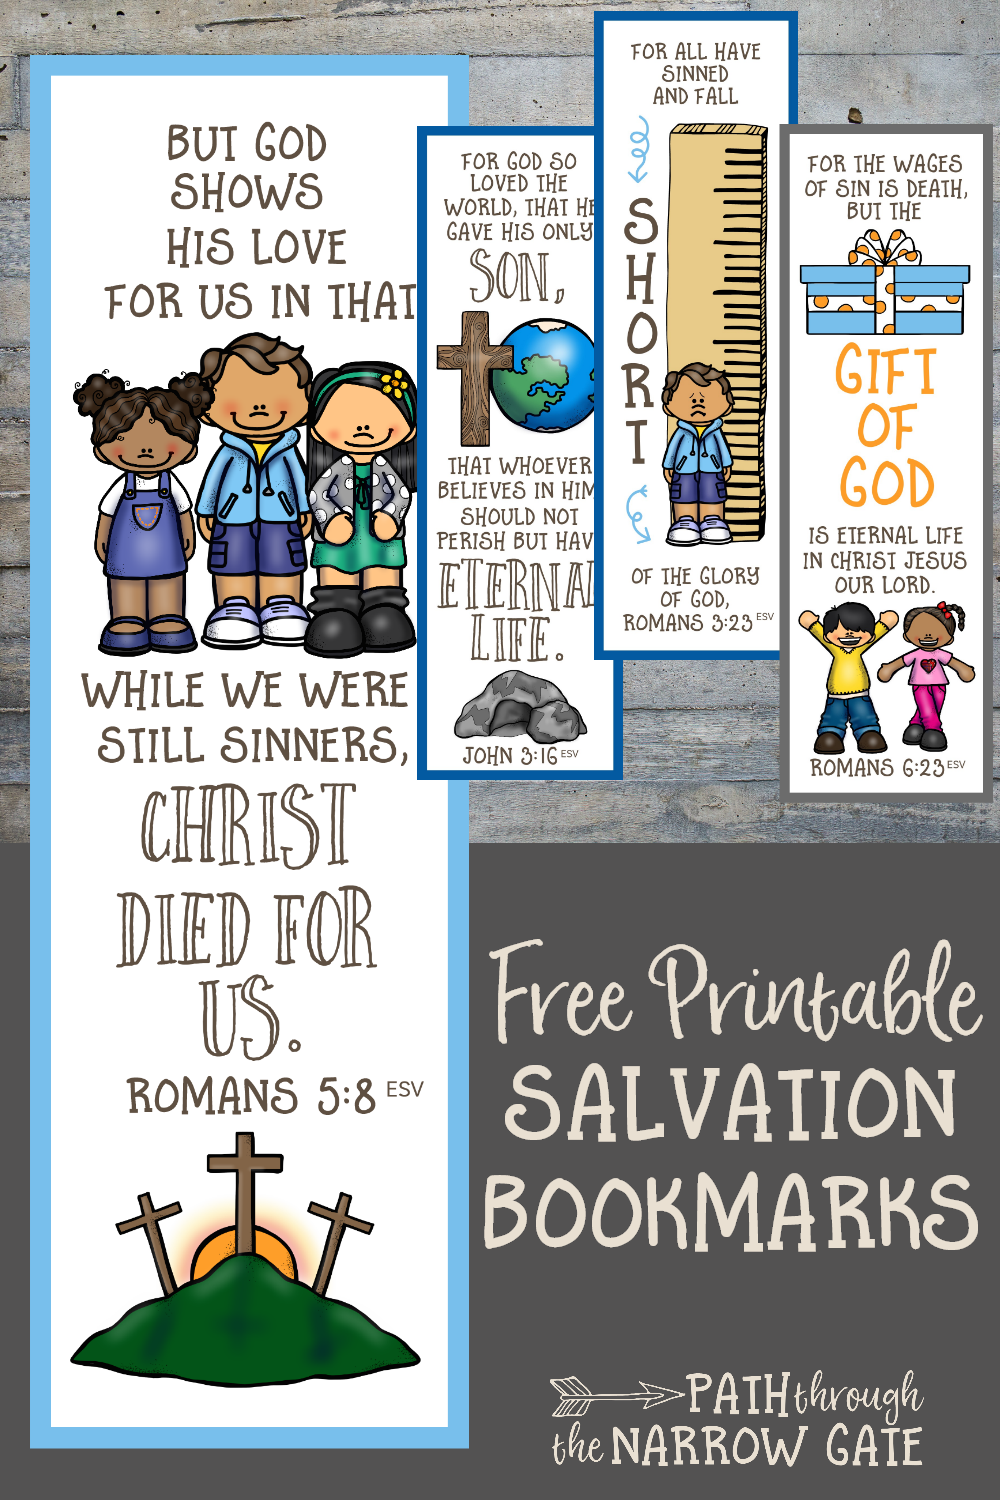 graphic regarding Romans Road Bookmark Printable known as Printable Salvation Bookmarks - Way All through the Slender Gate